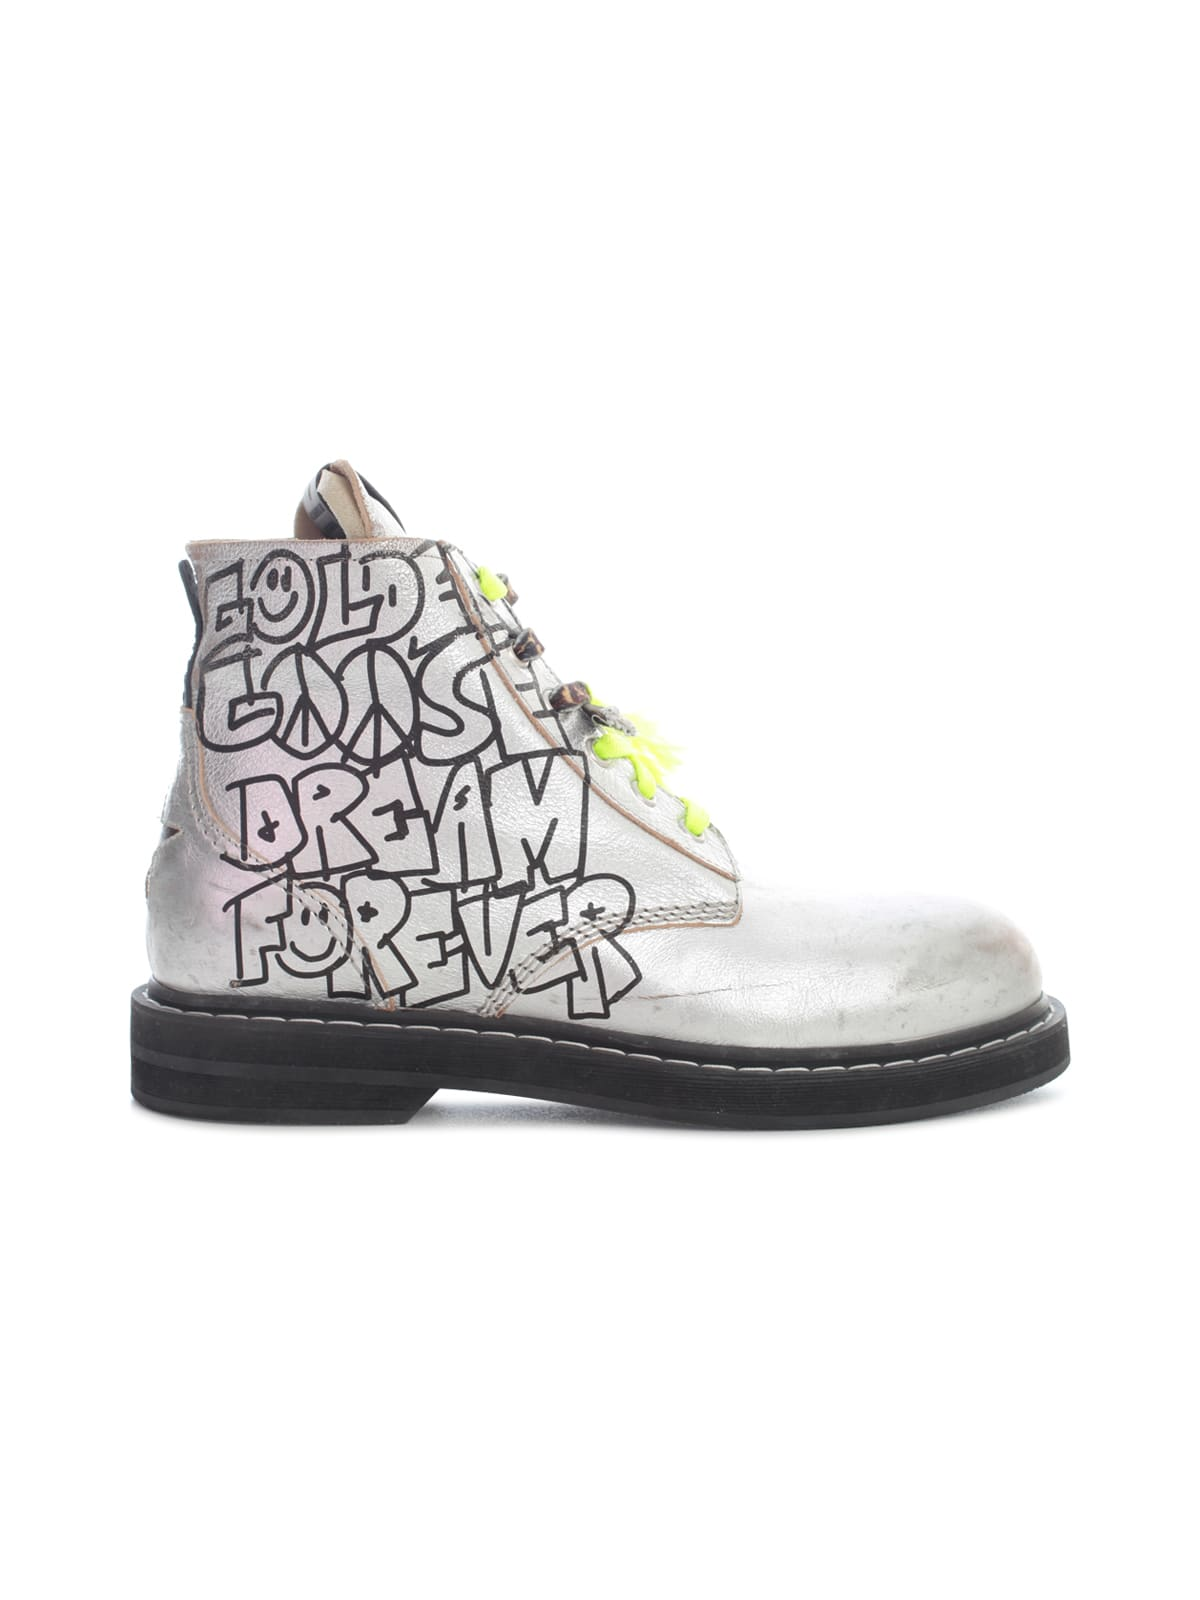 Buy Golden Goose Ele Laminated Leather Upper Dream Forever Signature online, shop Golden Goose shoes with free shipping